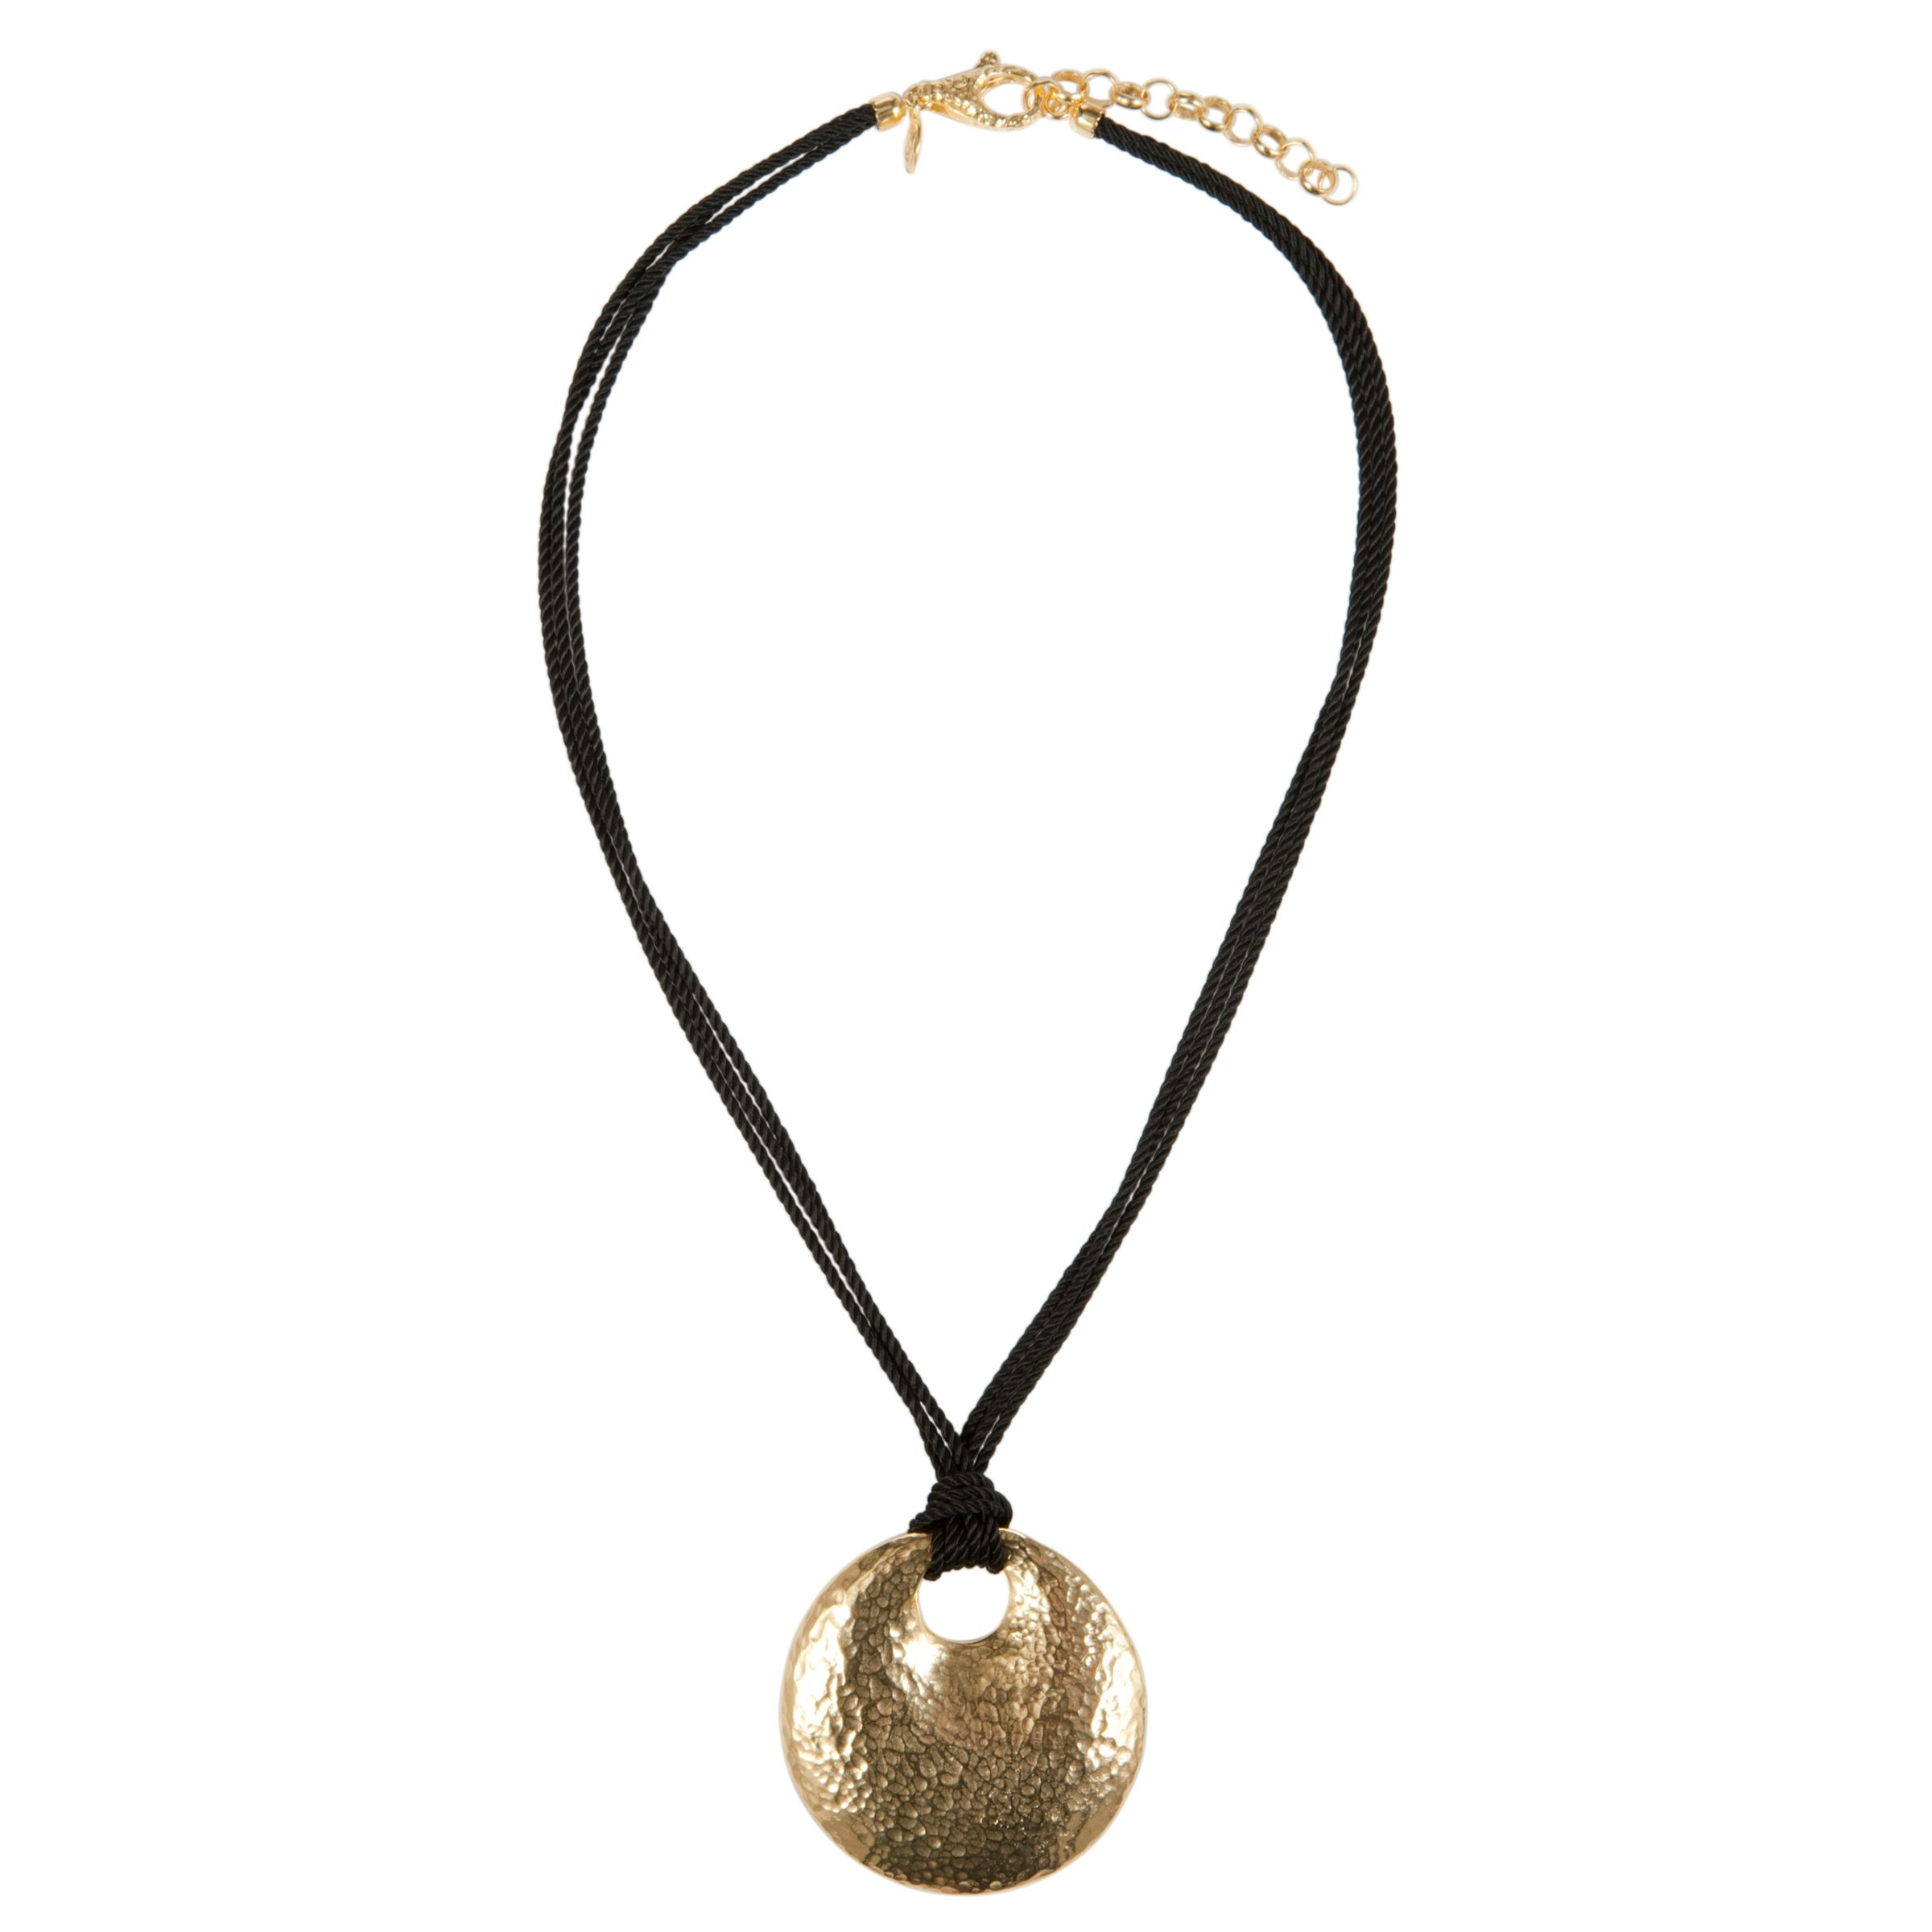 Etrusca Round Hammered Pendant Black Cord Necklace